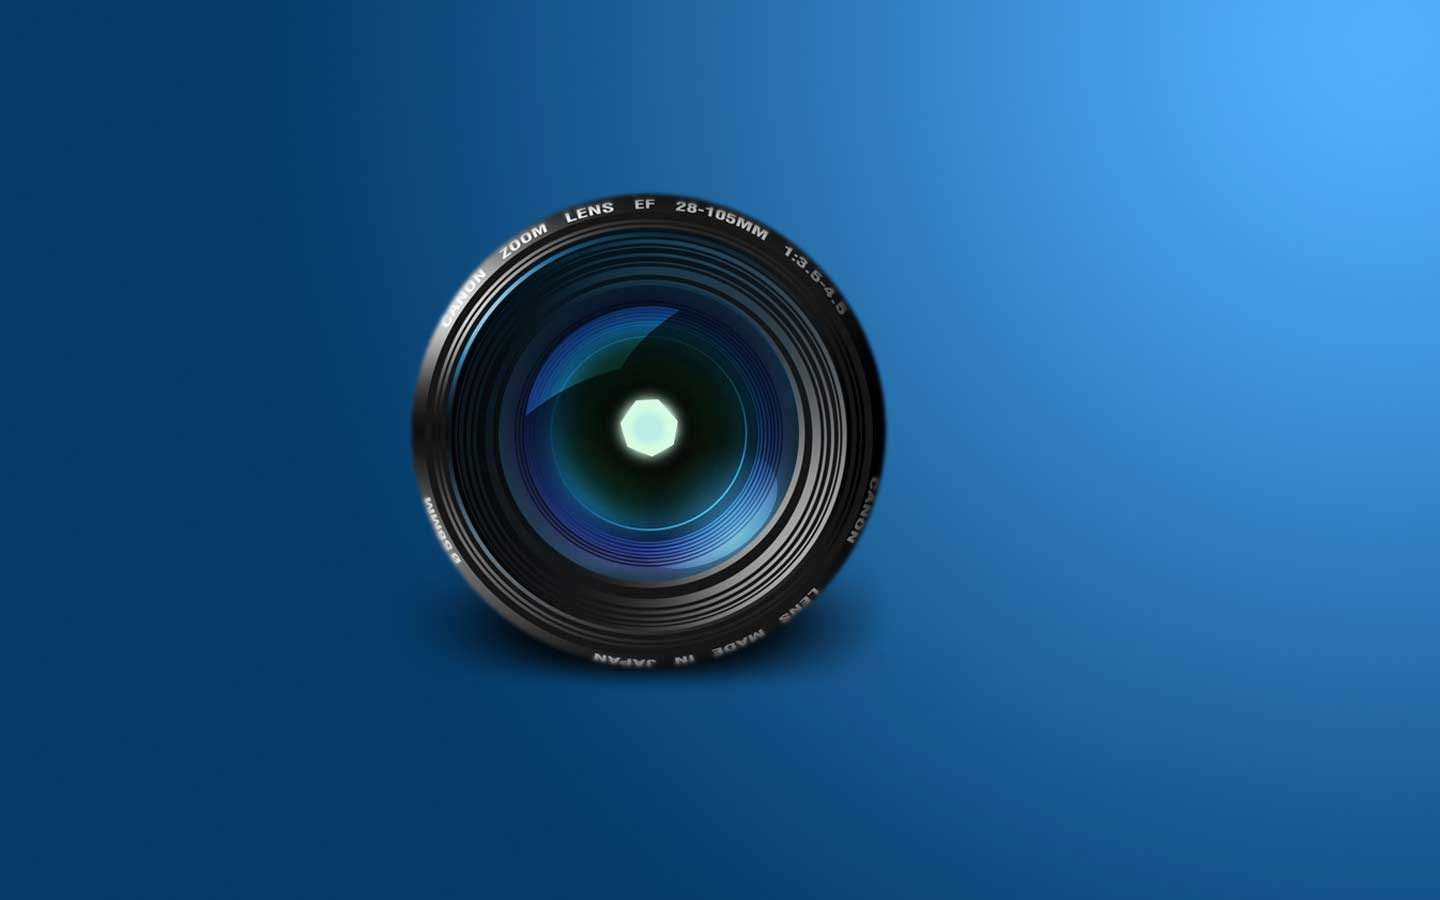 Free Download Camera Lens Photography Wallpaper Auto Desktop Background Features 1440x900 For Your Desktop Mobile Tablet Explore 48 Video Camera Wallpaper Canon Camera Wallpaper Canon Hd Wallpaper Vintage Camera Wallpaper